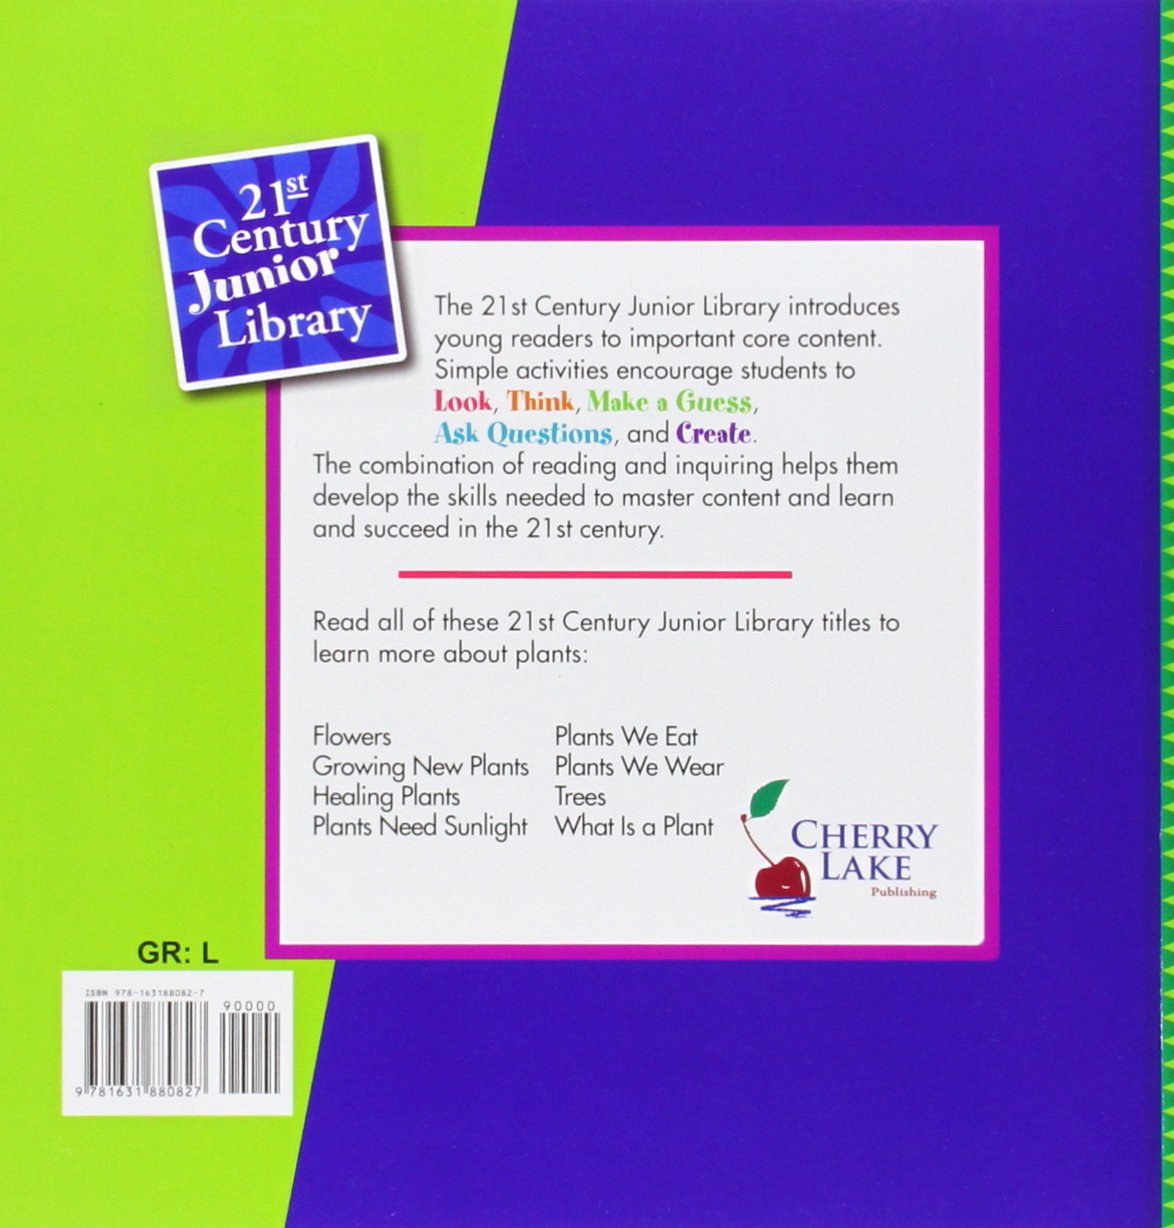 Plants We Eat (21st Century Junior Library) by Cherry Lake Pub (Image #2)